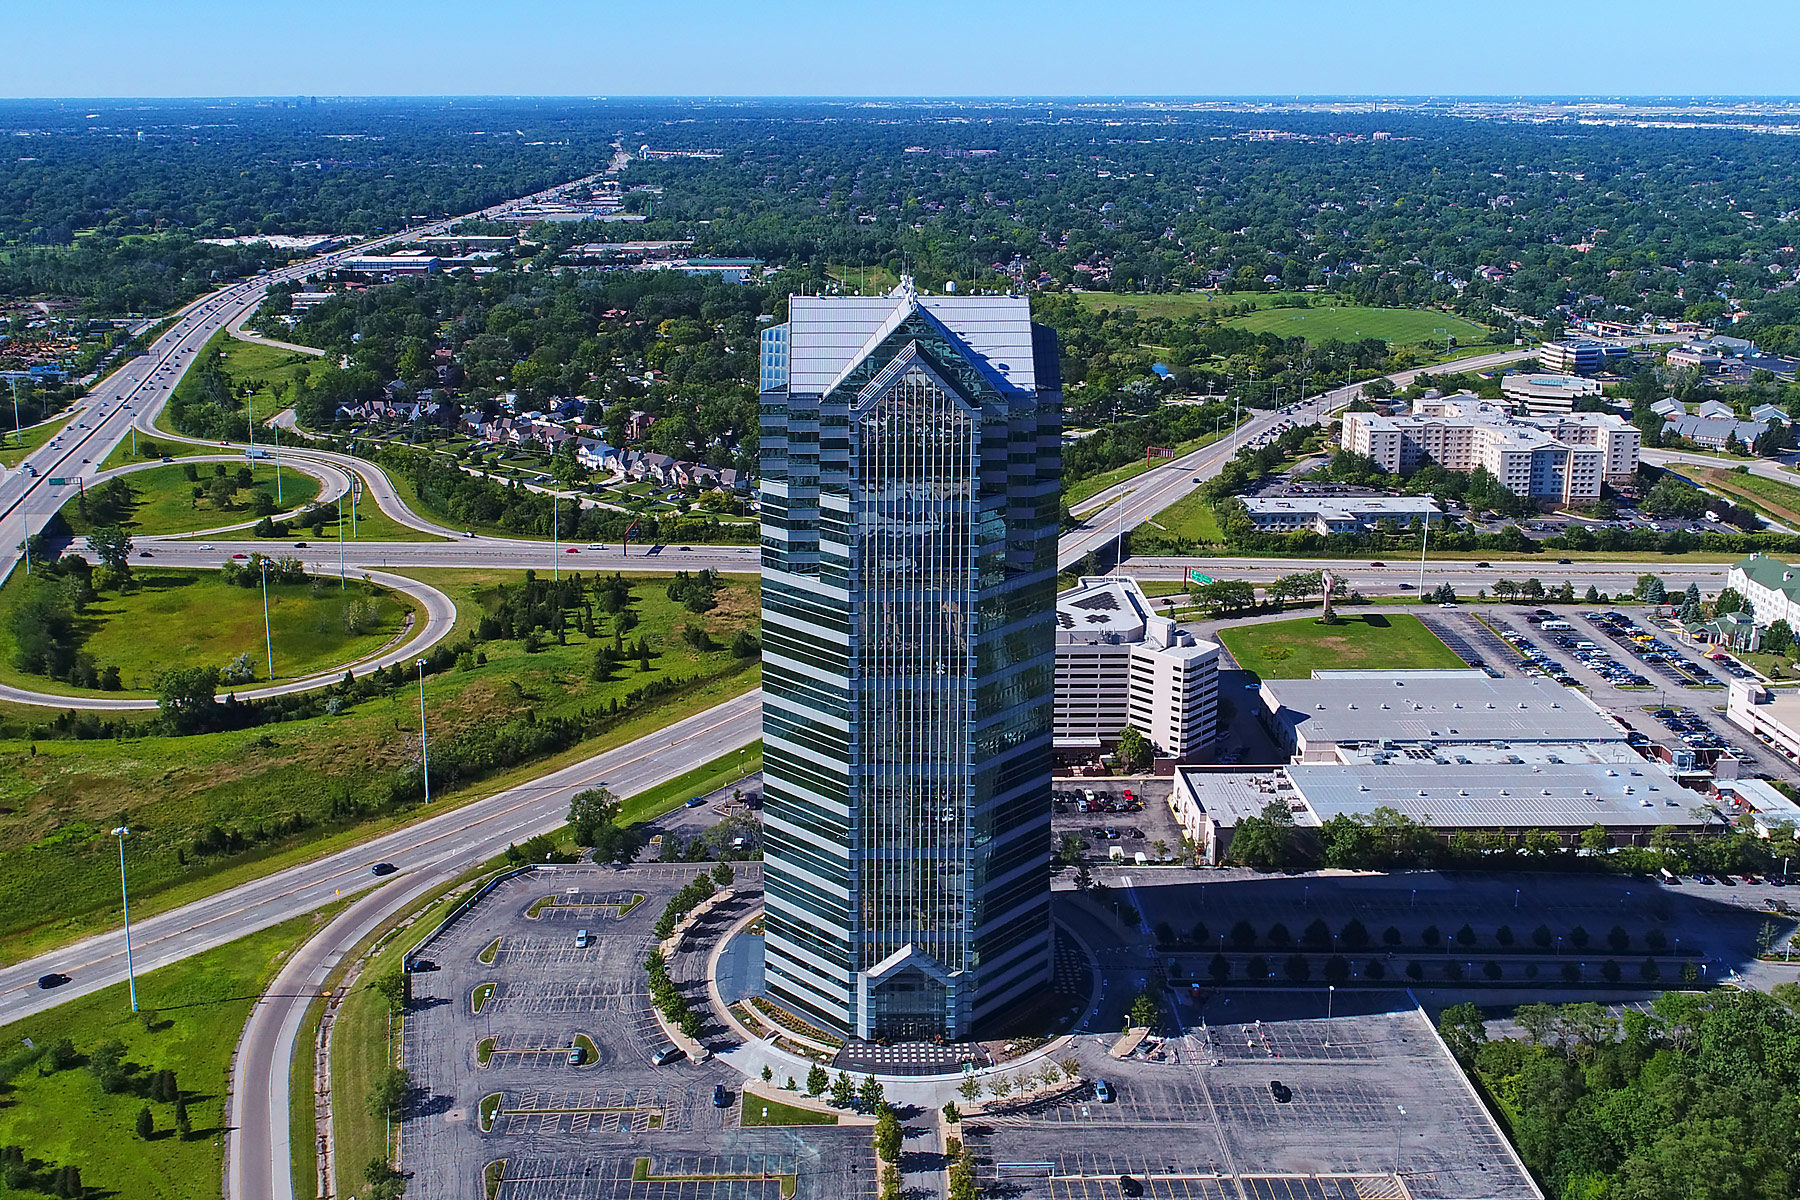 featured image for the oakbrook terrace tower image gallery